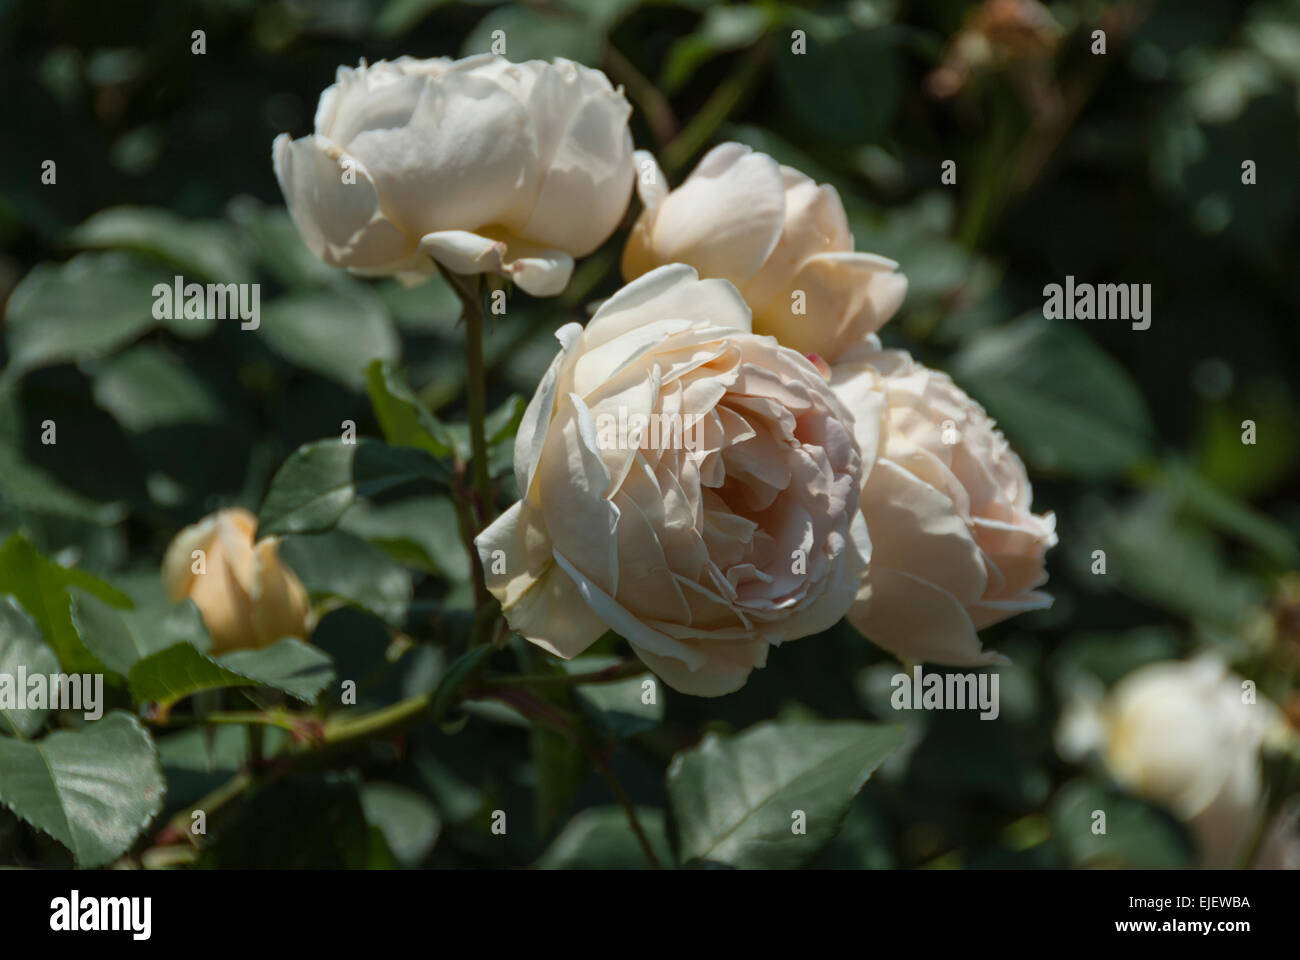 Jude the Obscure Rose in voller Blüte. Stockfoto